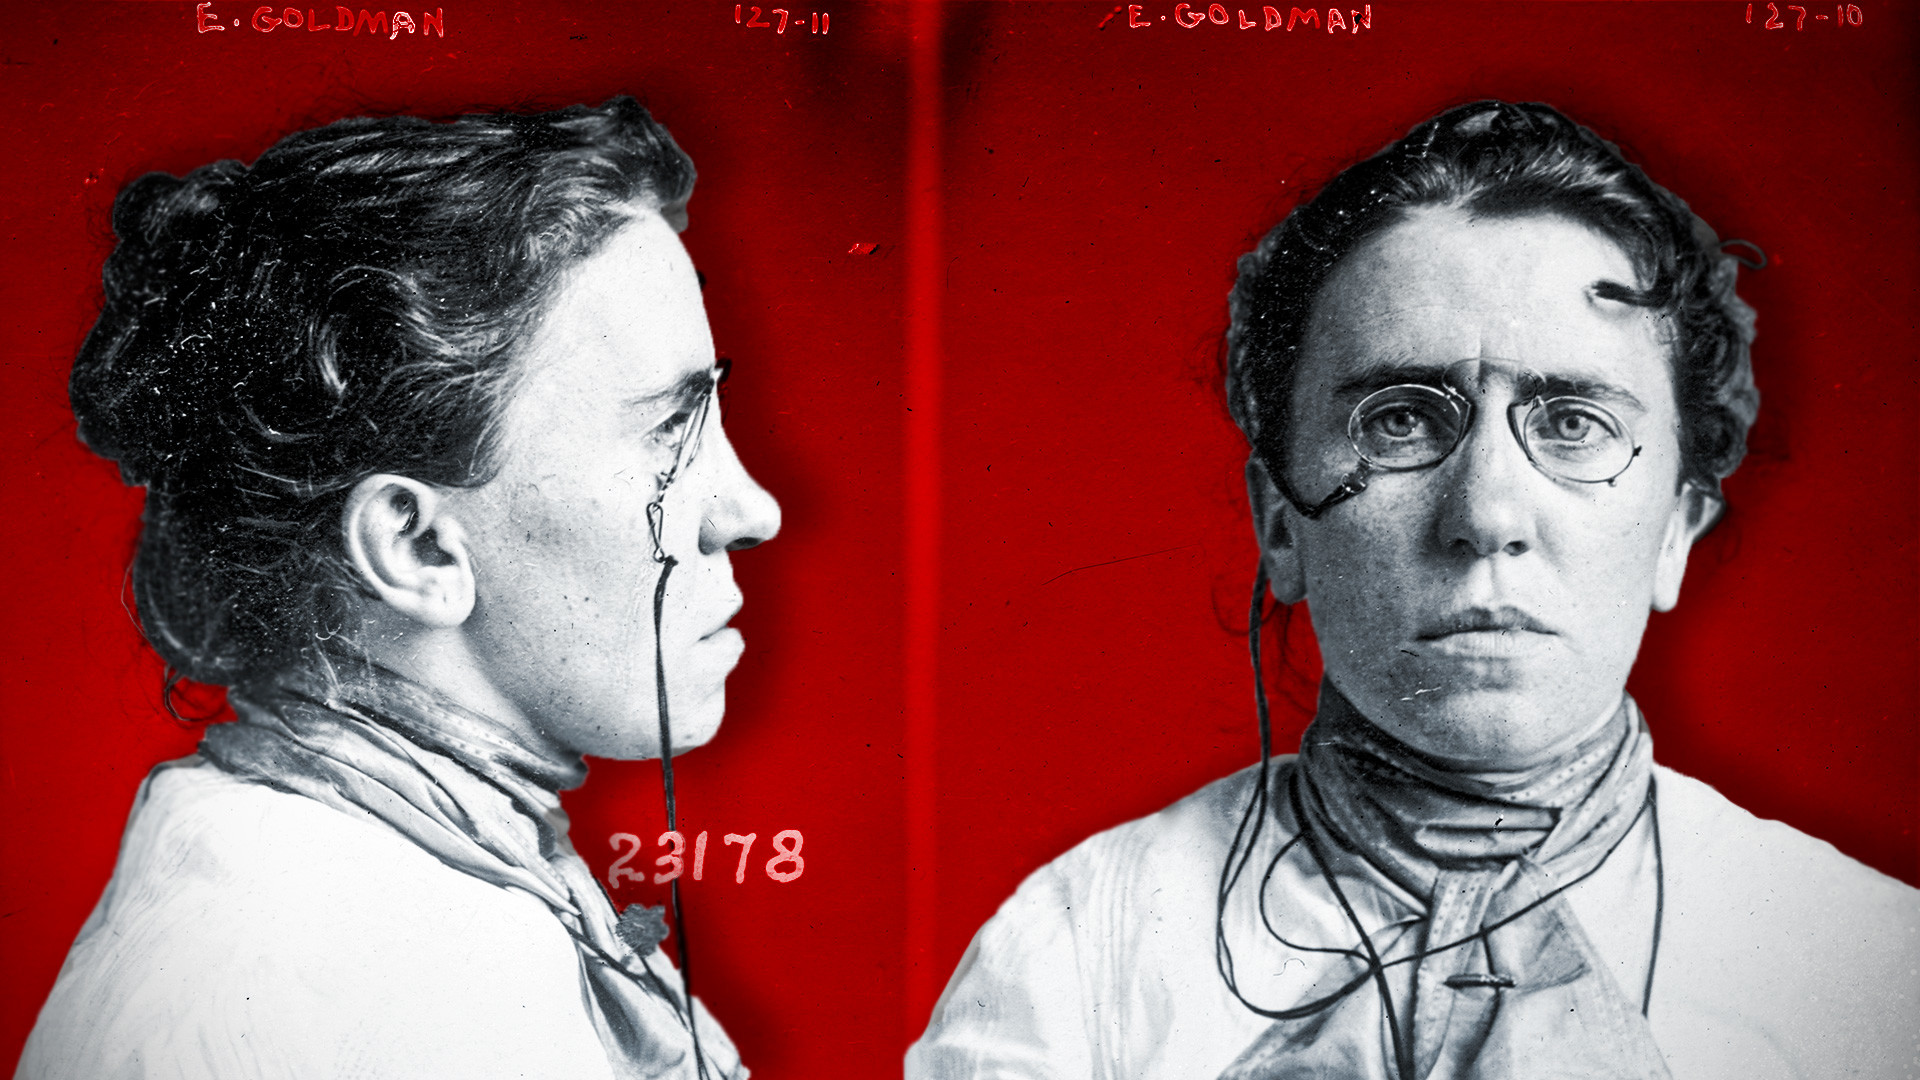 Mug shot taken in 1901 when Goldman was implicated in the assassination of President McKinley.